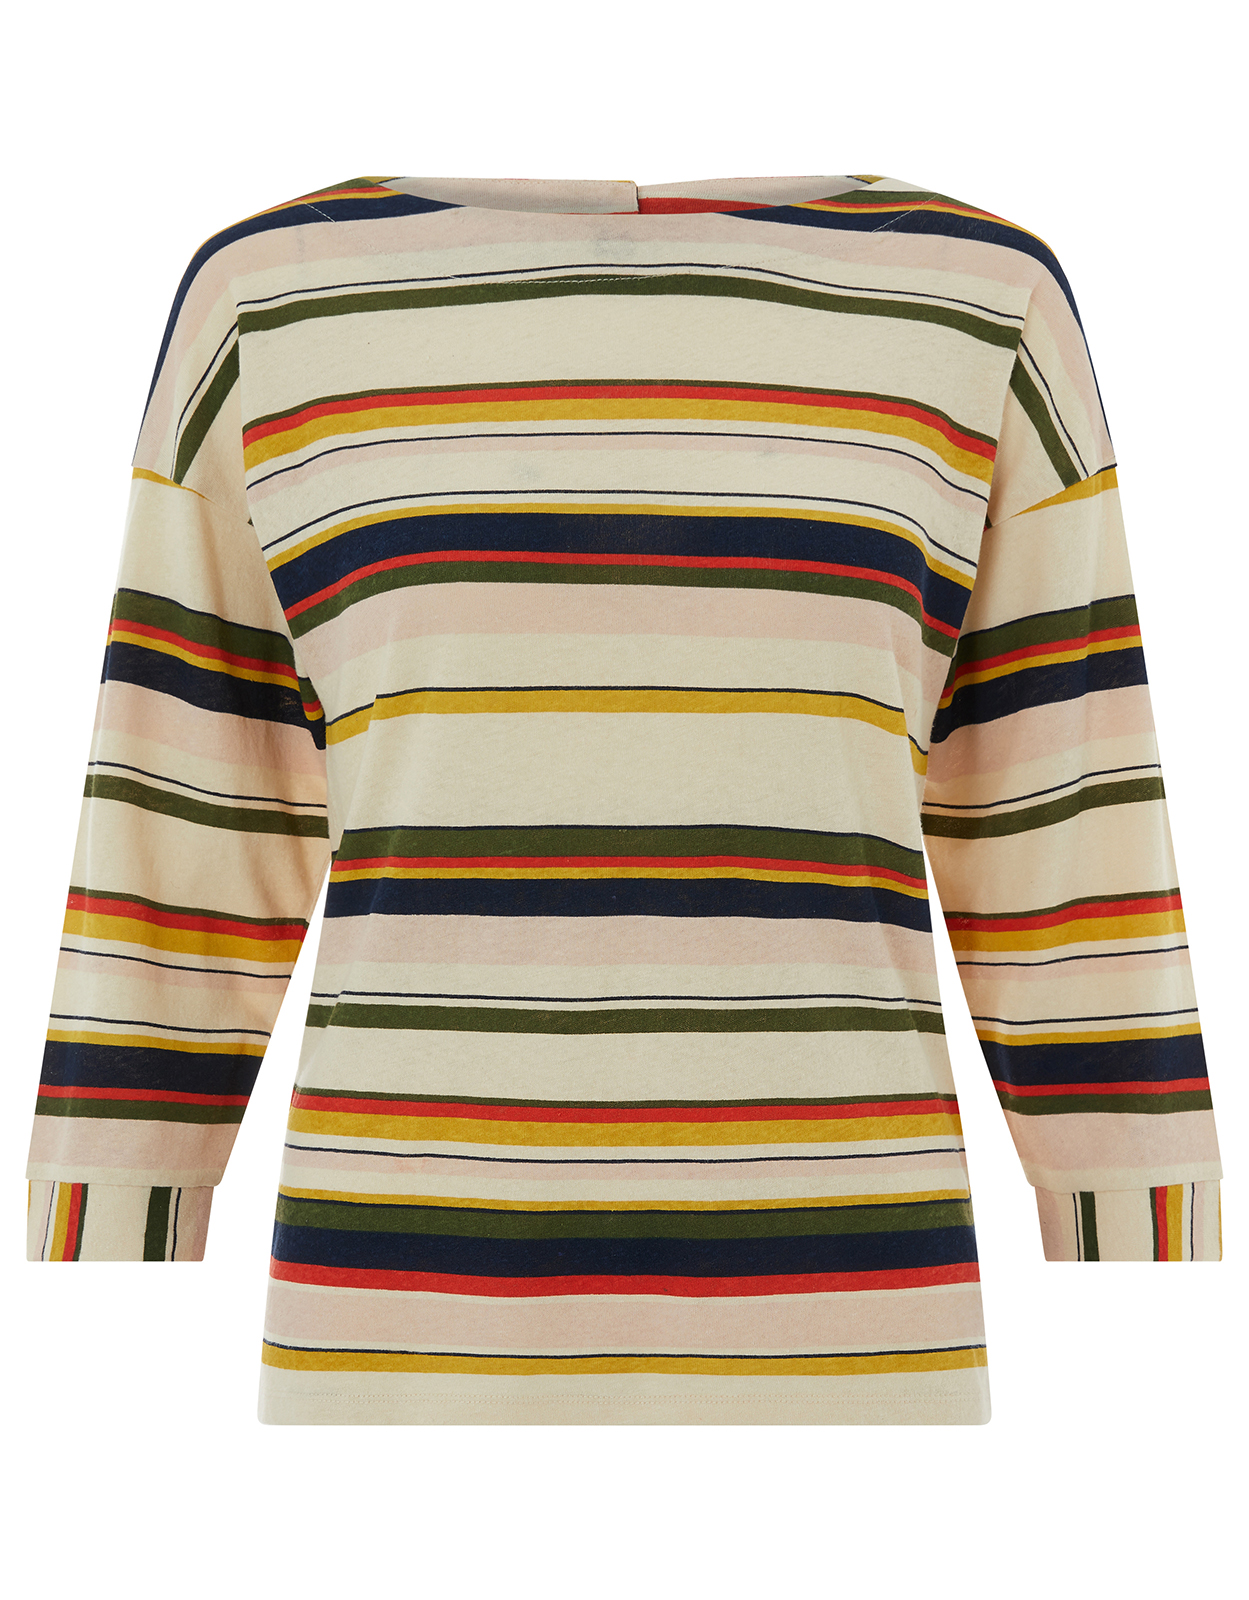 Monsoon Saffa Stripe Print Top